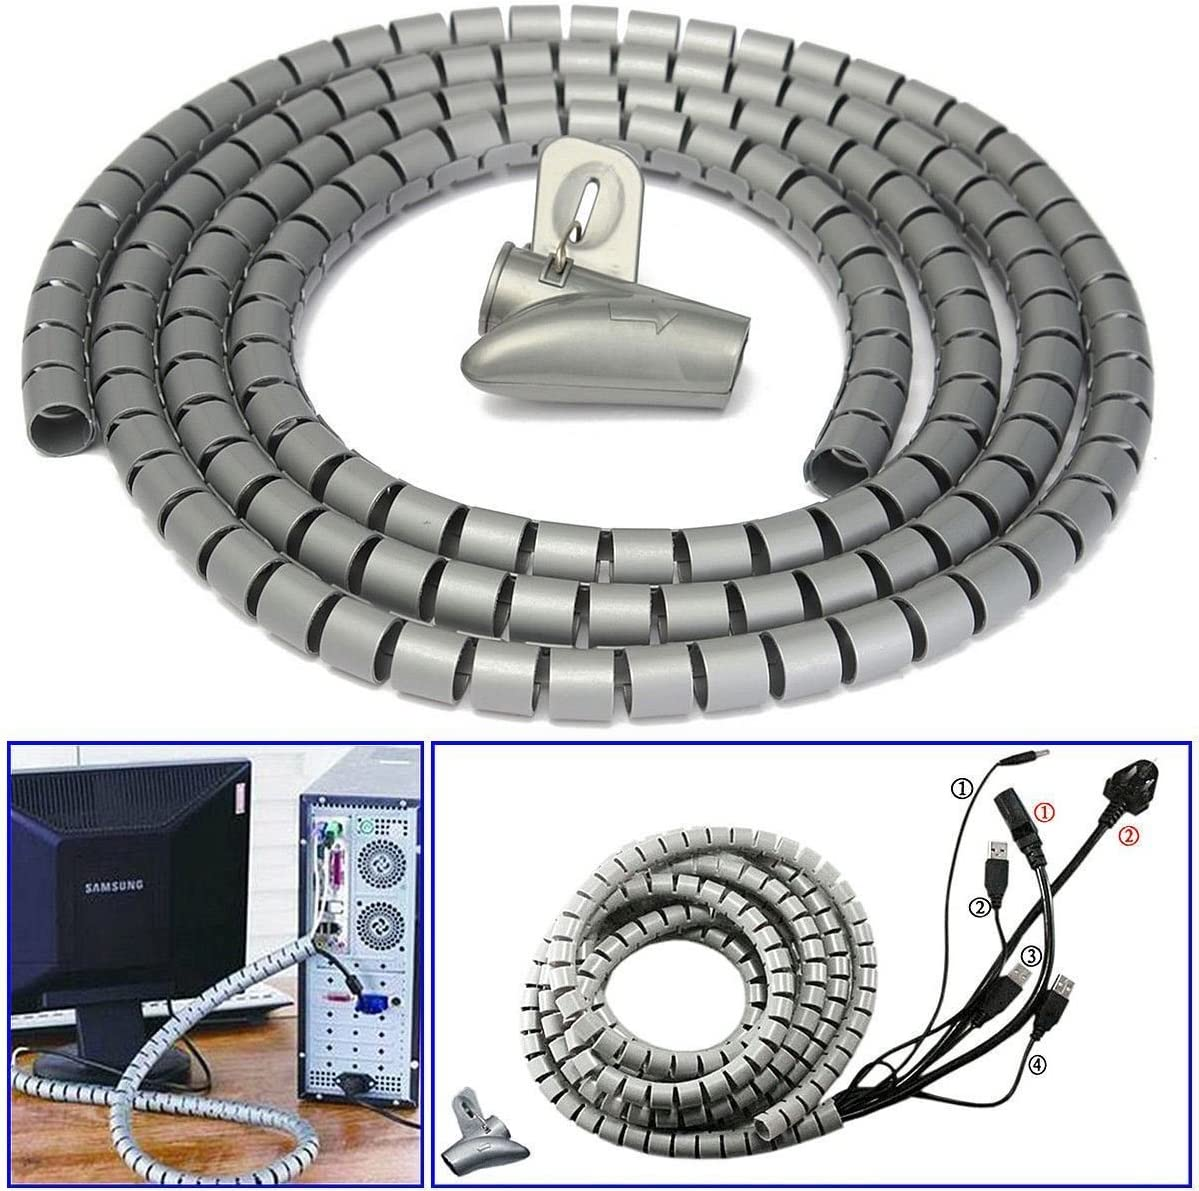 2m 10//22mm Cable Spiral Wrap Tidy Cord Wire Banding Storage Organizer Tool Home